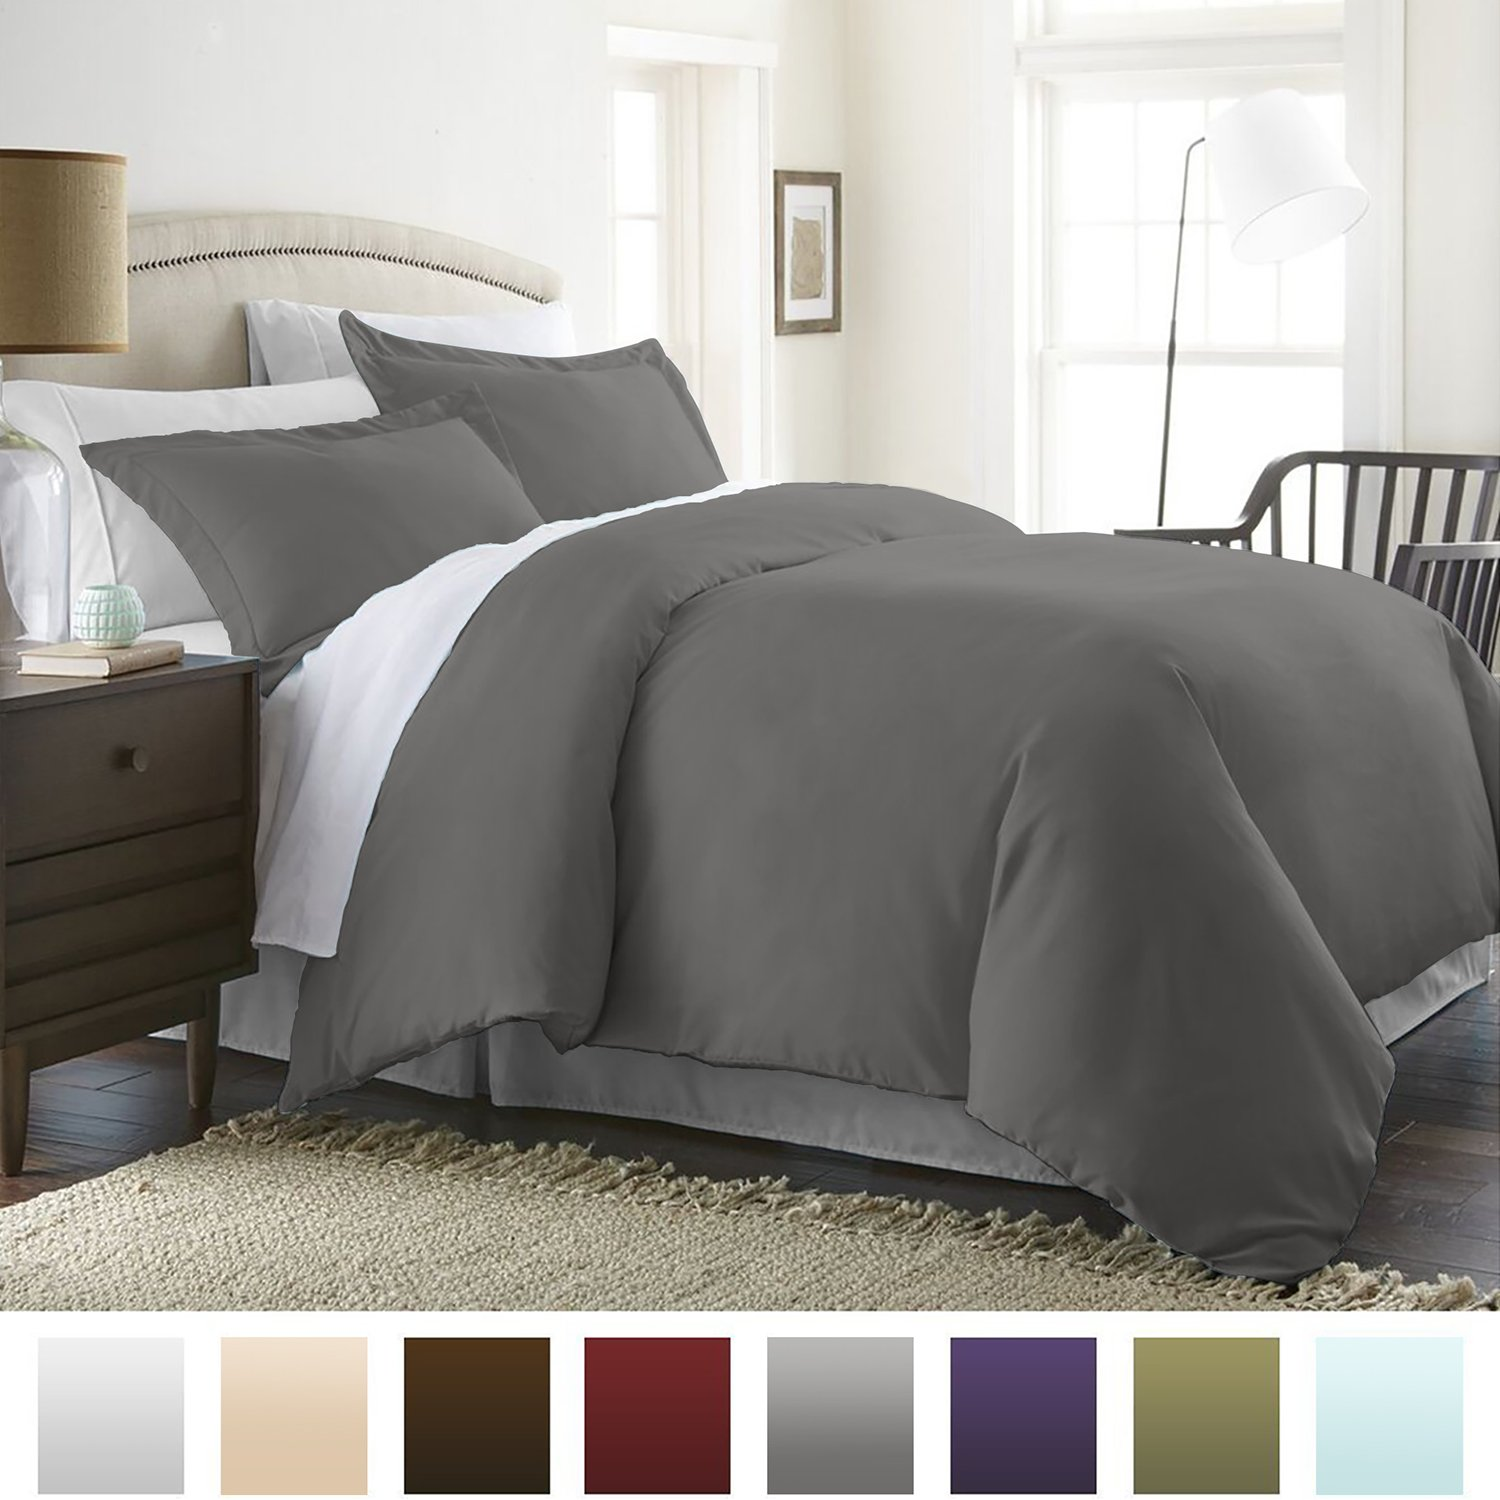 Beckham Hotel Collection Luxury Soft Brushed 1800 Series Microfiber Duvet Cover Set - Hypoallergenic - Twin/Twin XL, Gray